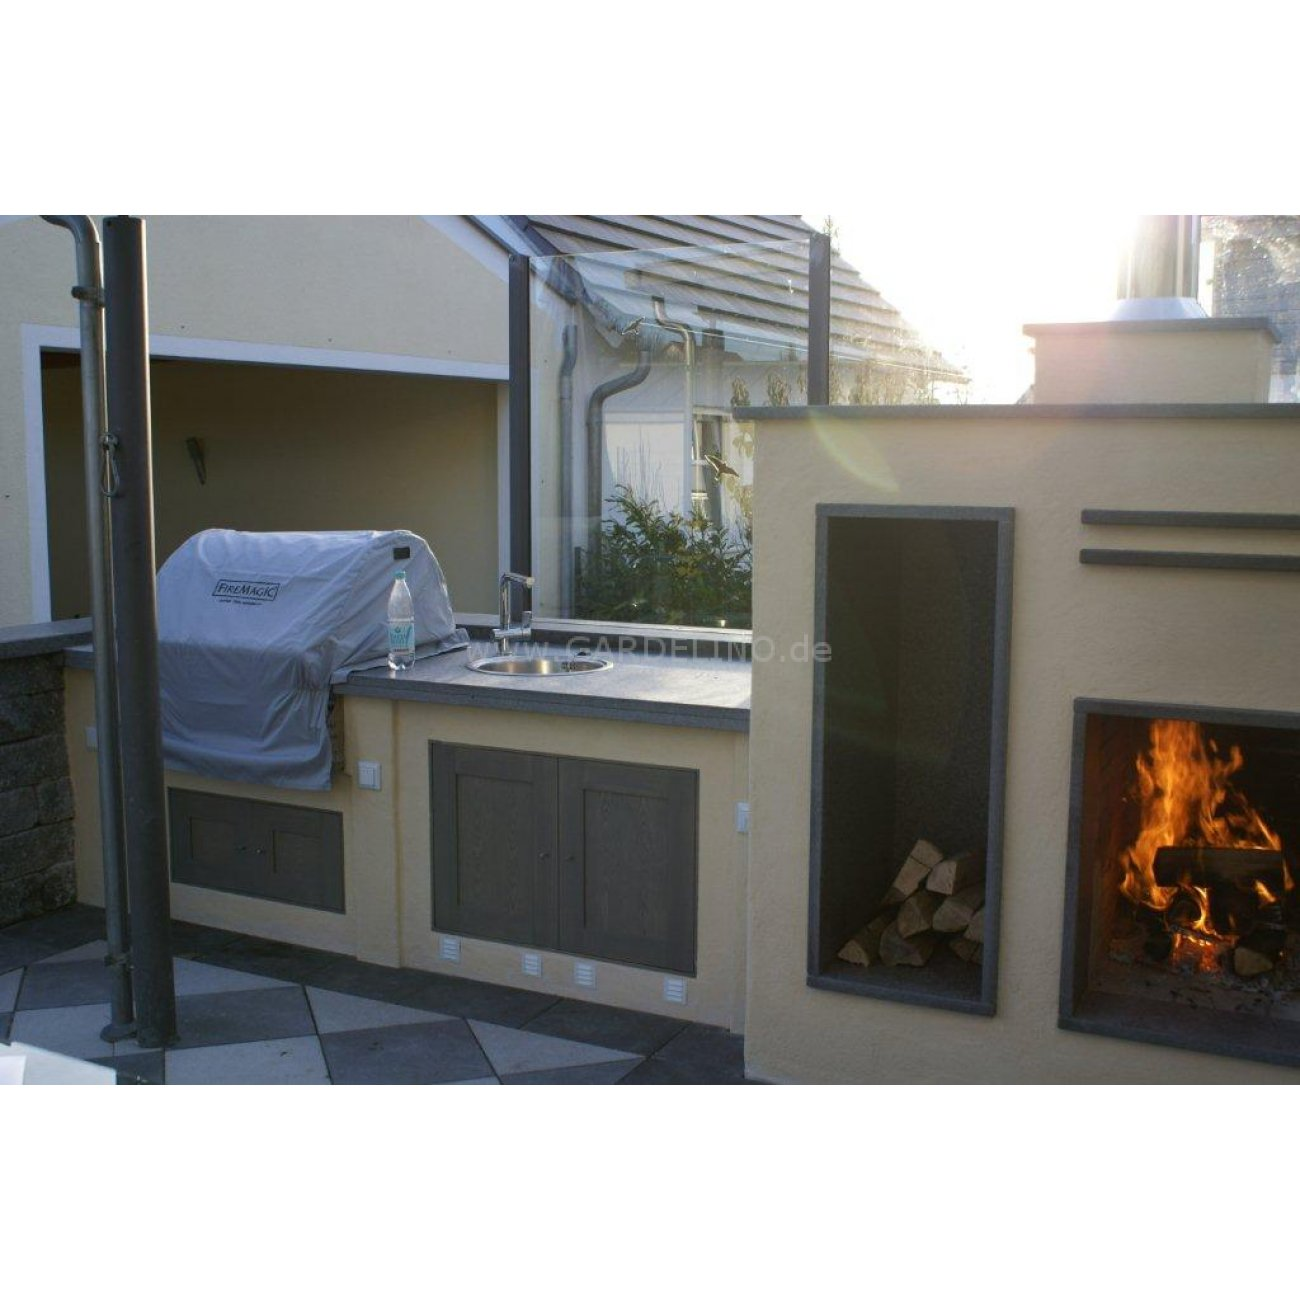 Outdoor Küche Smoker Gemauerte Outdoorküche Mit Fire Magic Grill